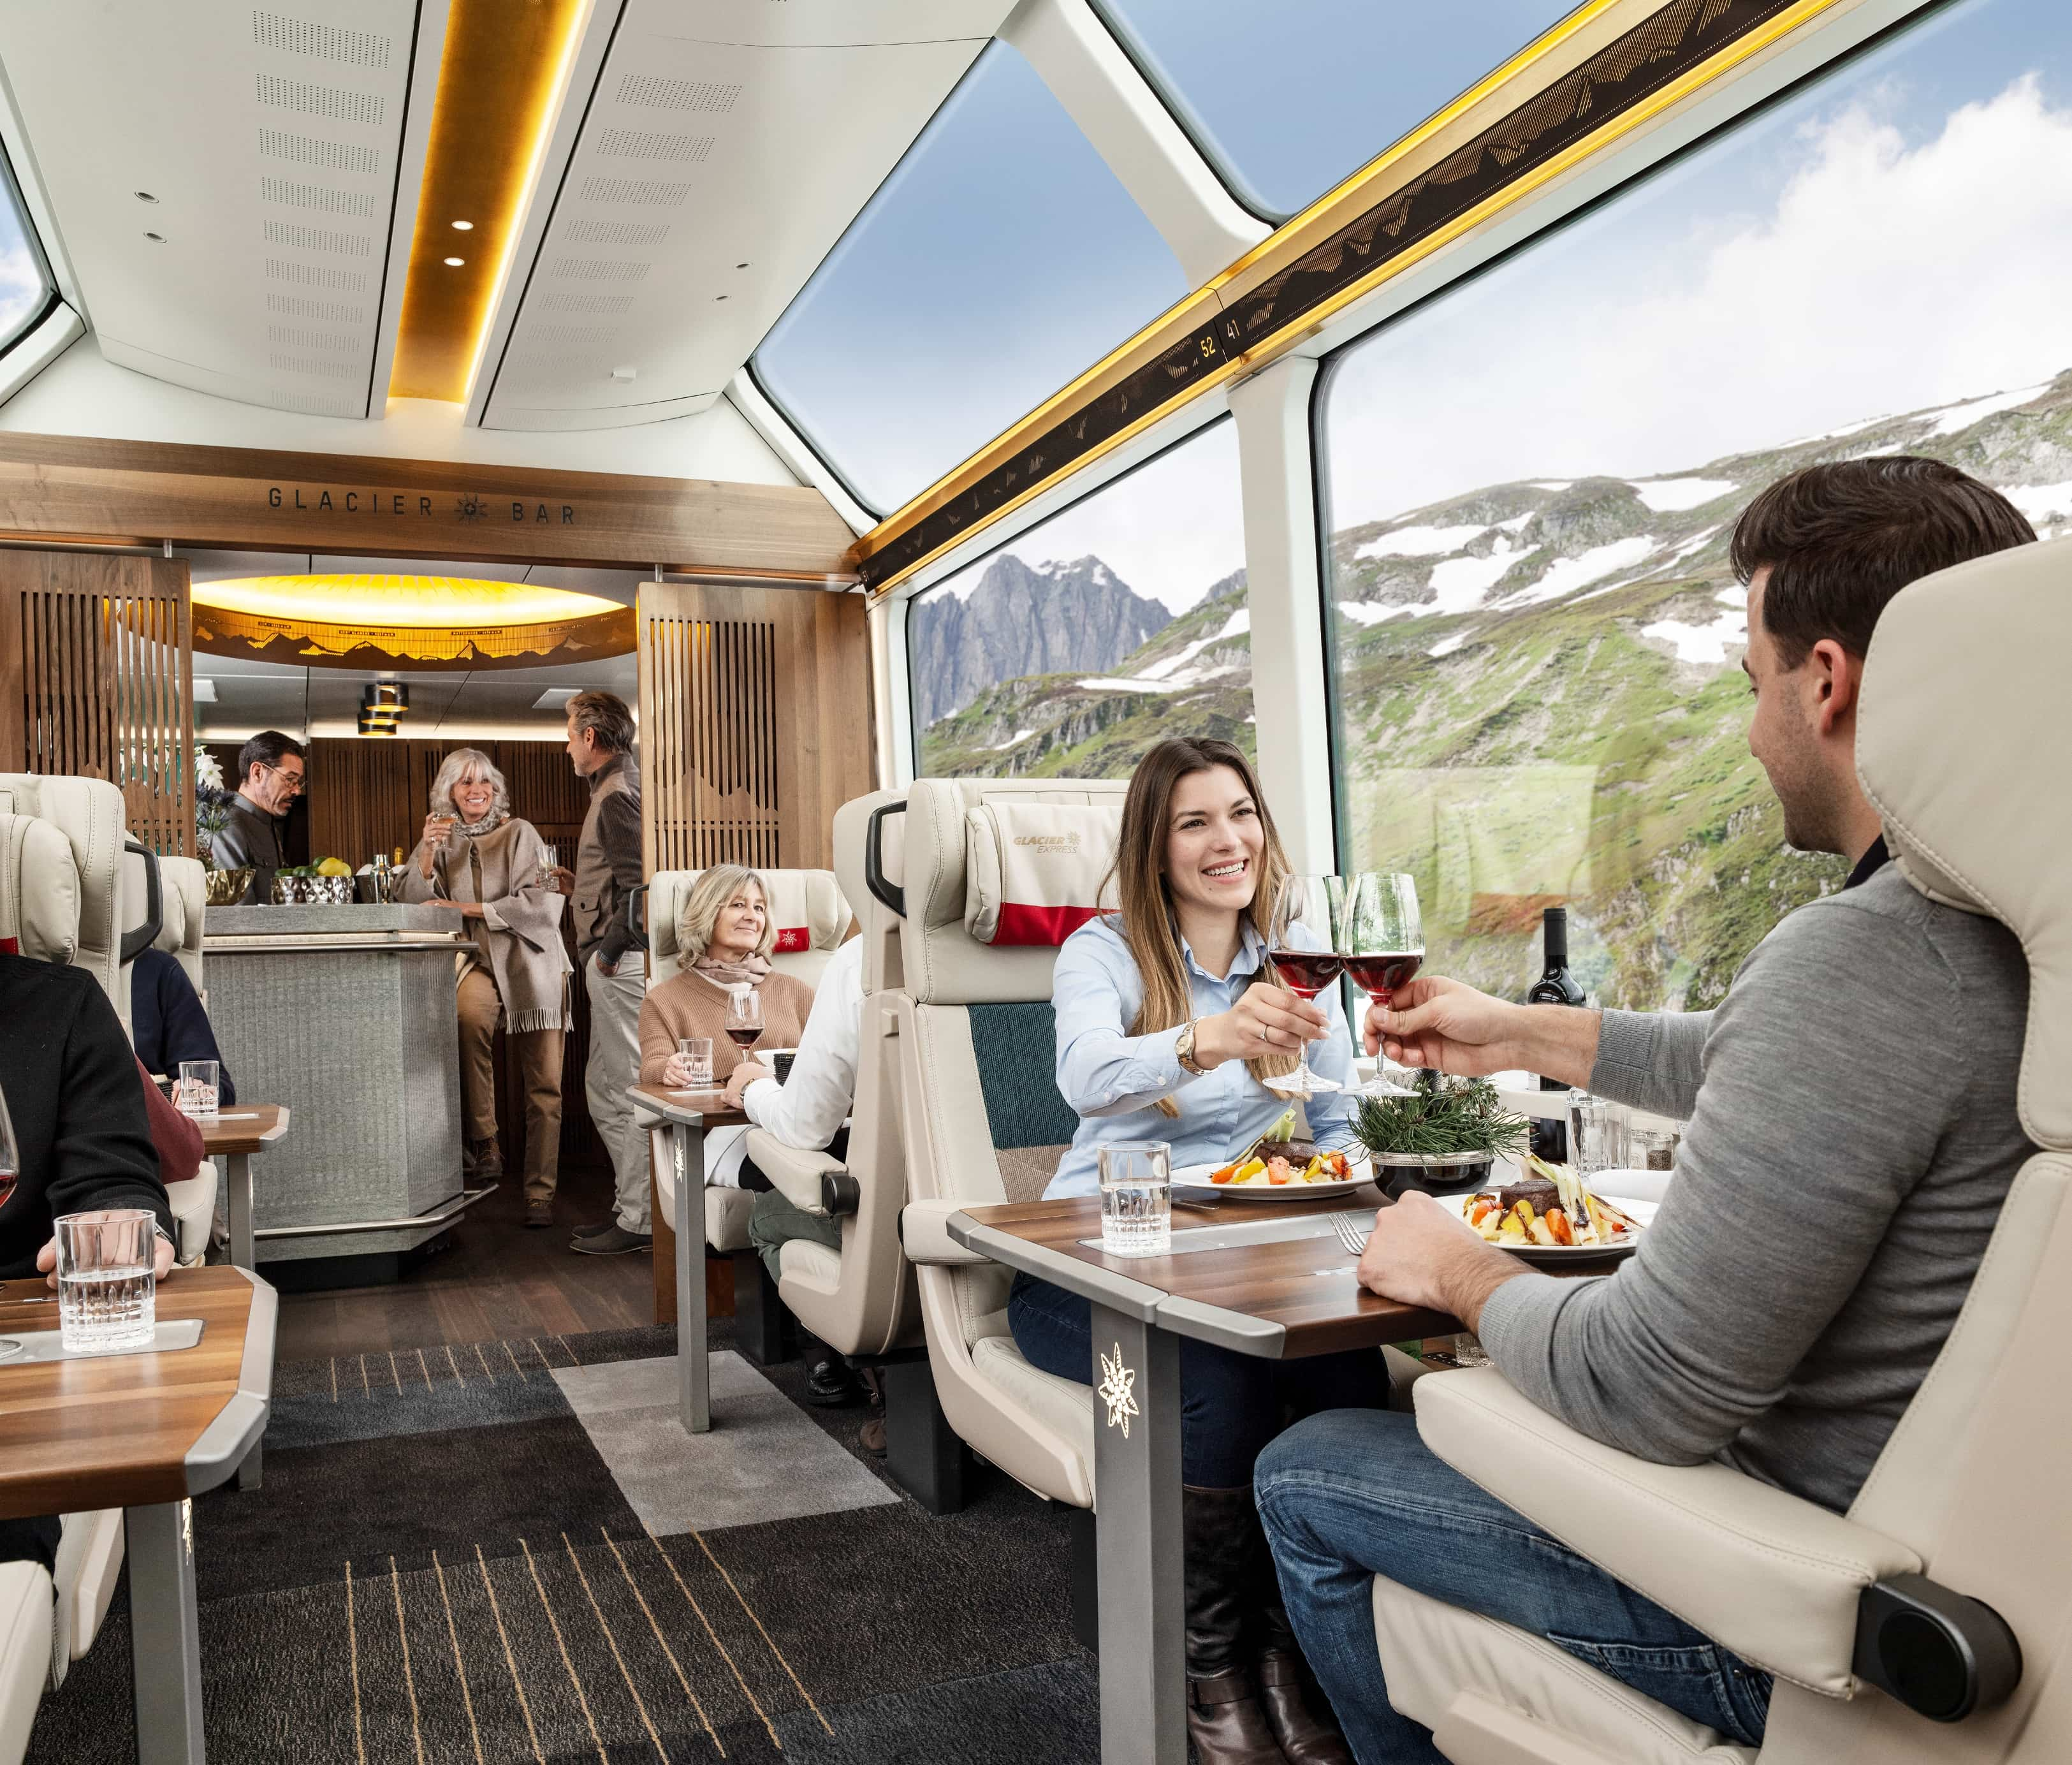 Take a ride on the Glacier Express in Excellence Class